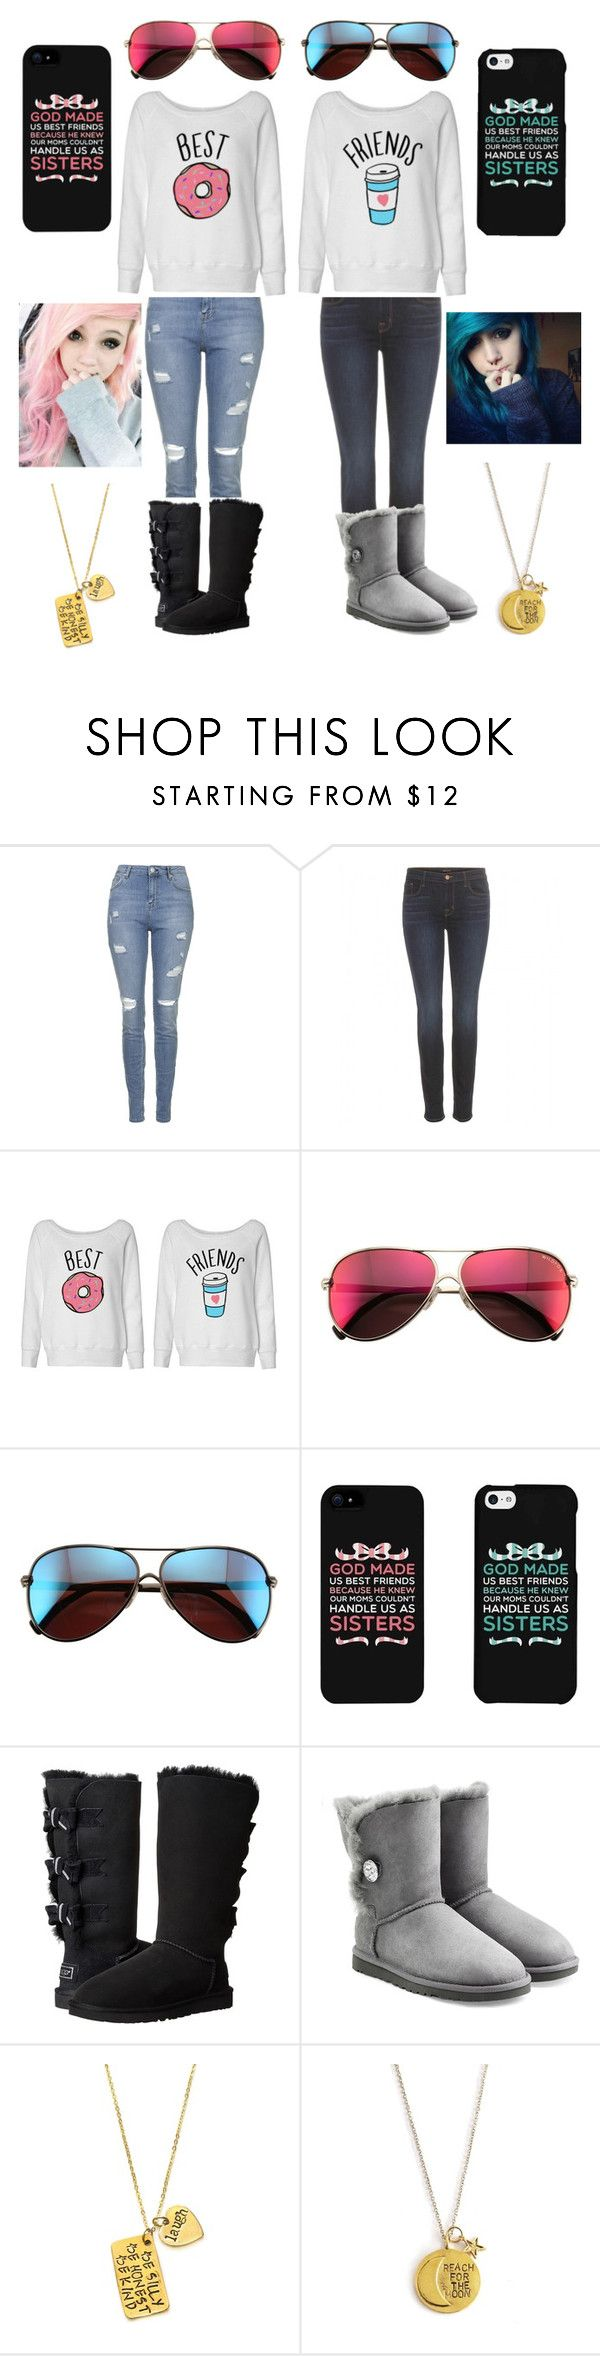 """""""#55 'Best Friends' matching outfit"""" by thatfamousdork on Polyvore featuring beauty, Topshop, J Brand, Wildfox, UGG Australia and Alisa Michelle"""